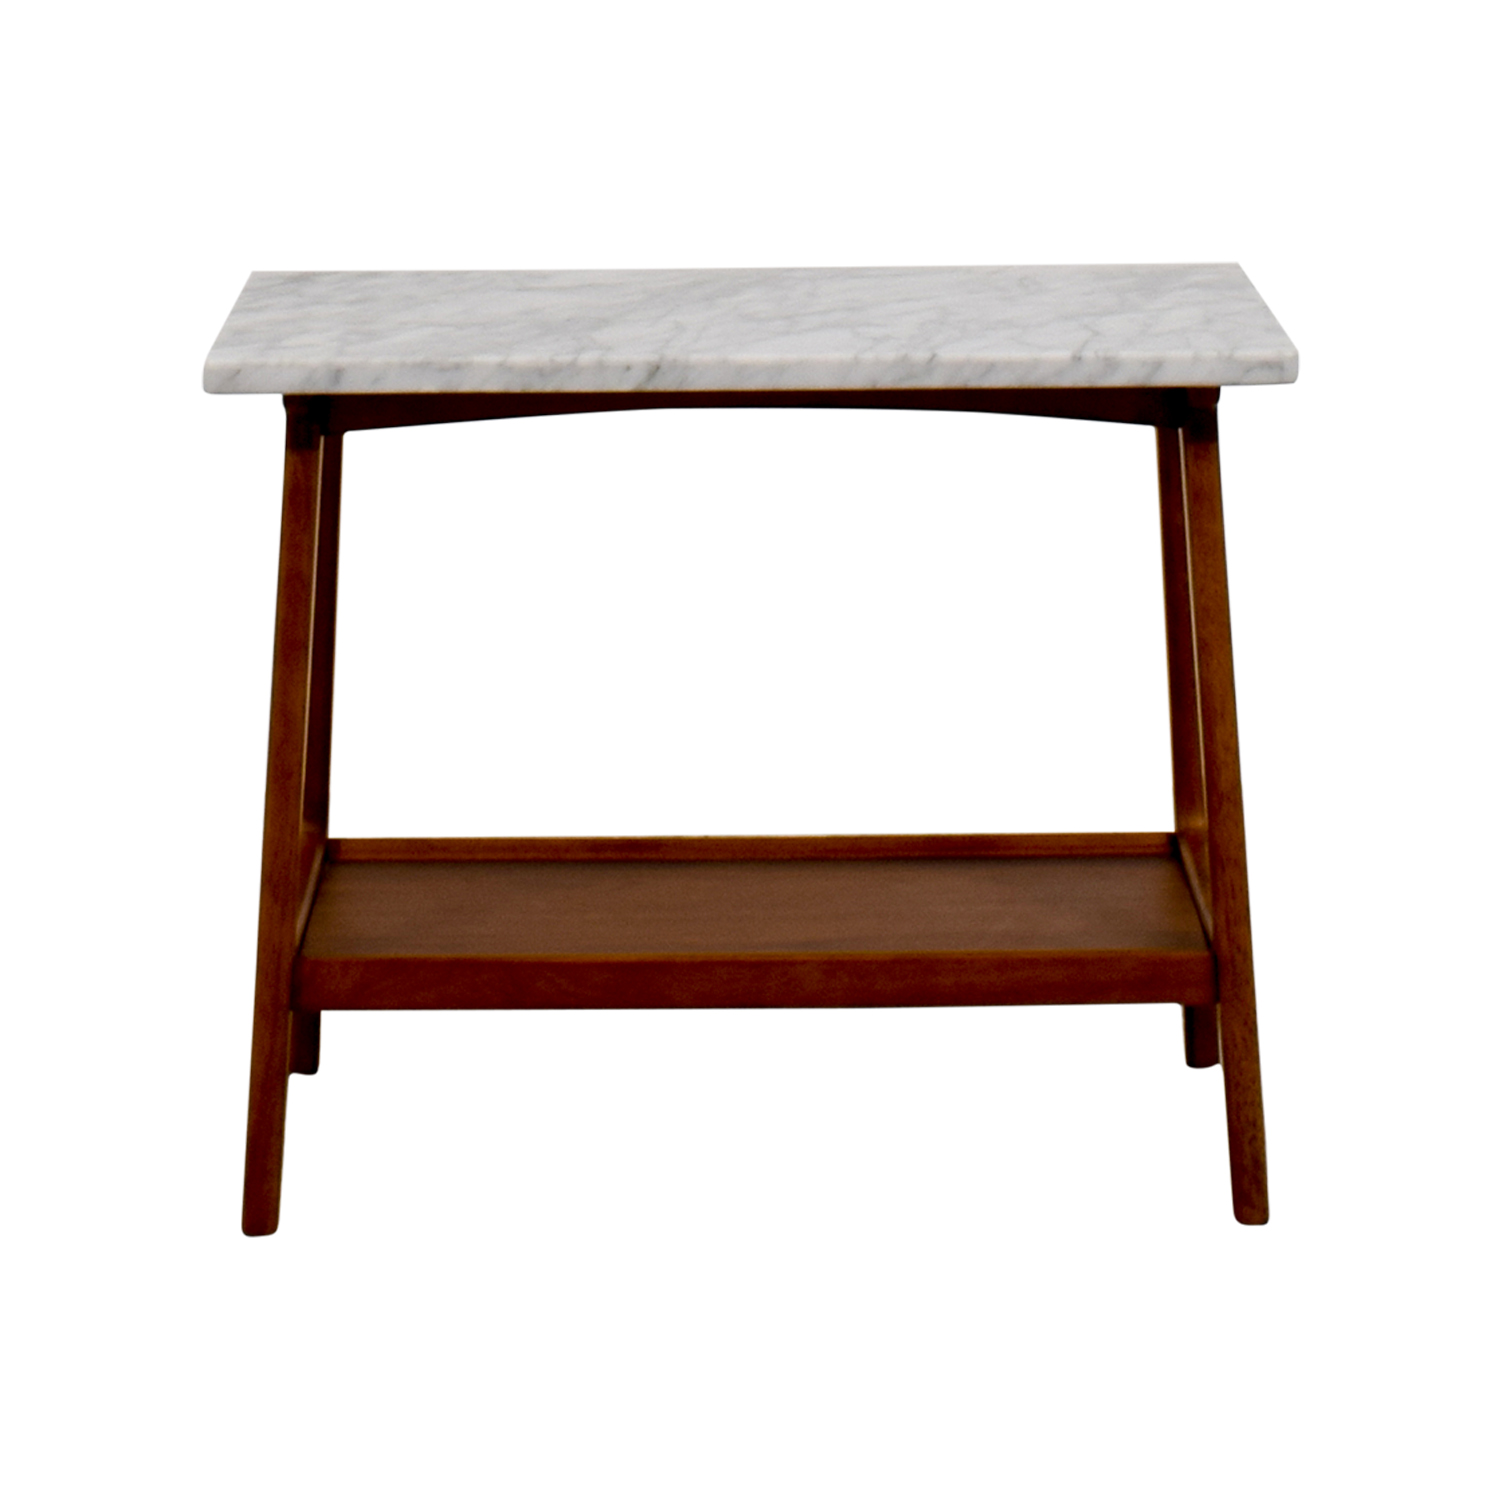 OFF West Elm West Elm Reeve Marble Walnut Side Table Tables - Walnut and marble coffee table